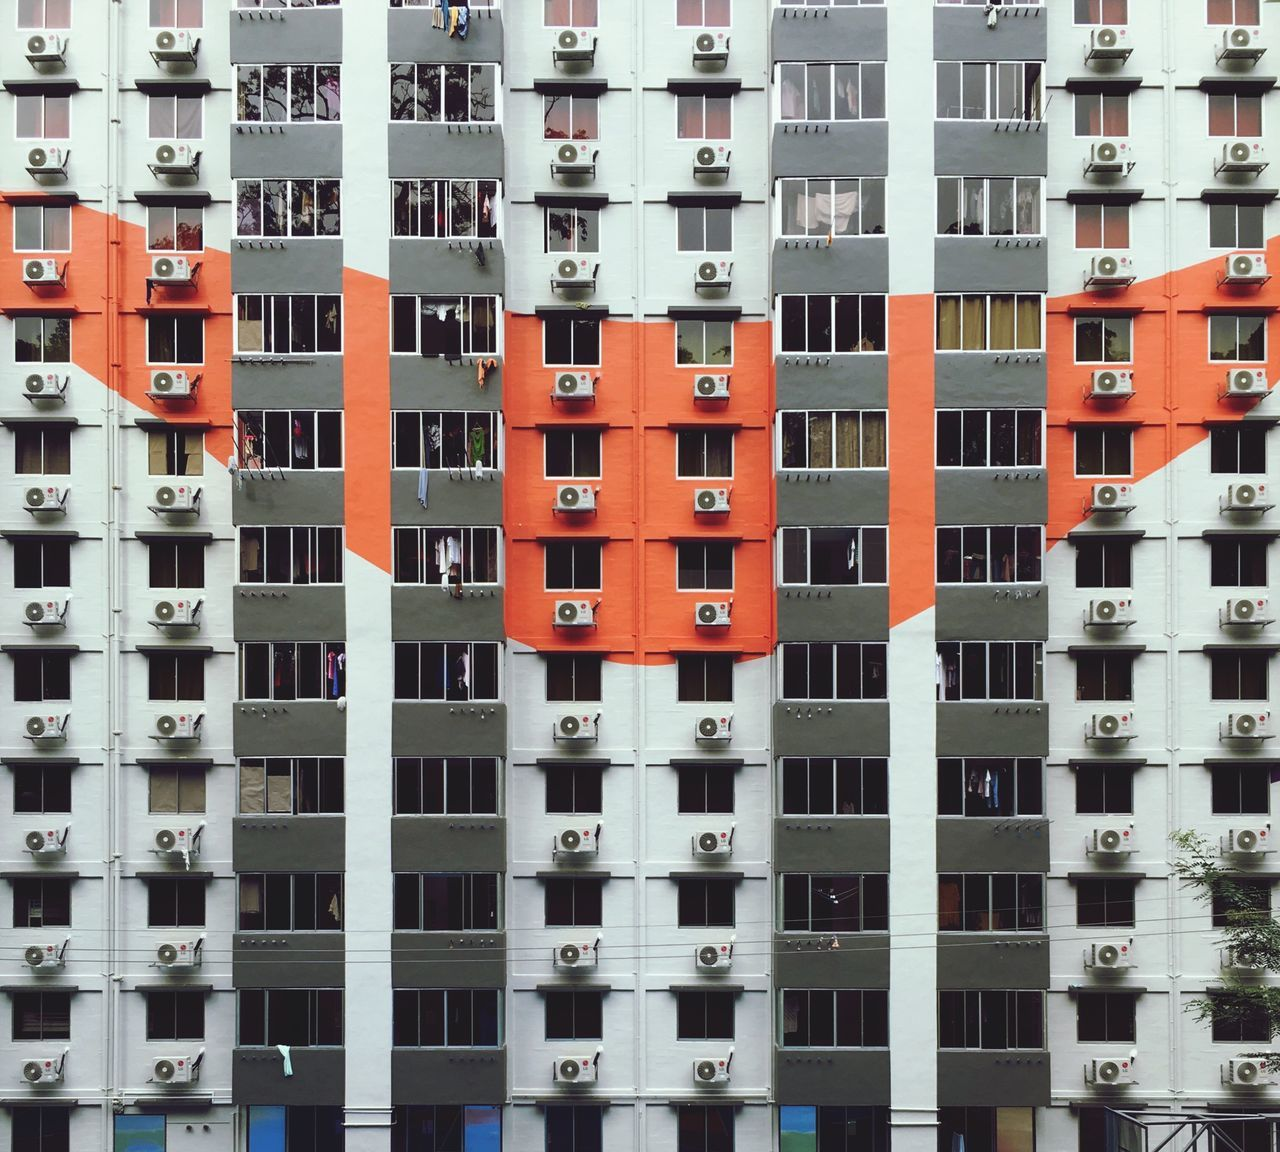 Full frame shot of apartment building in city